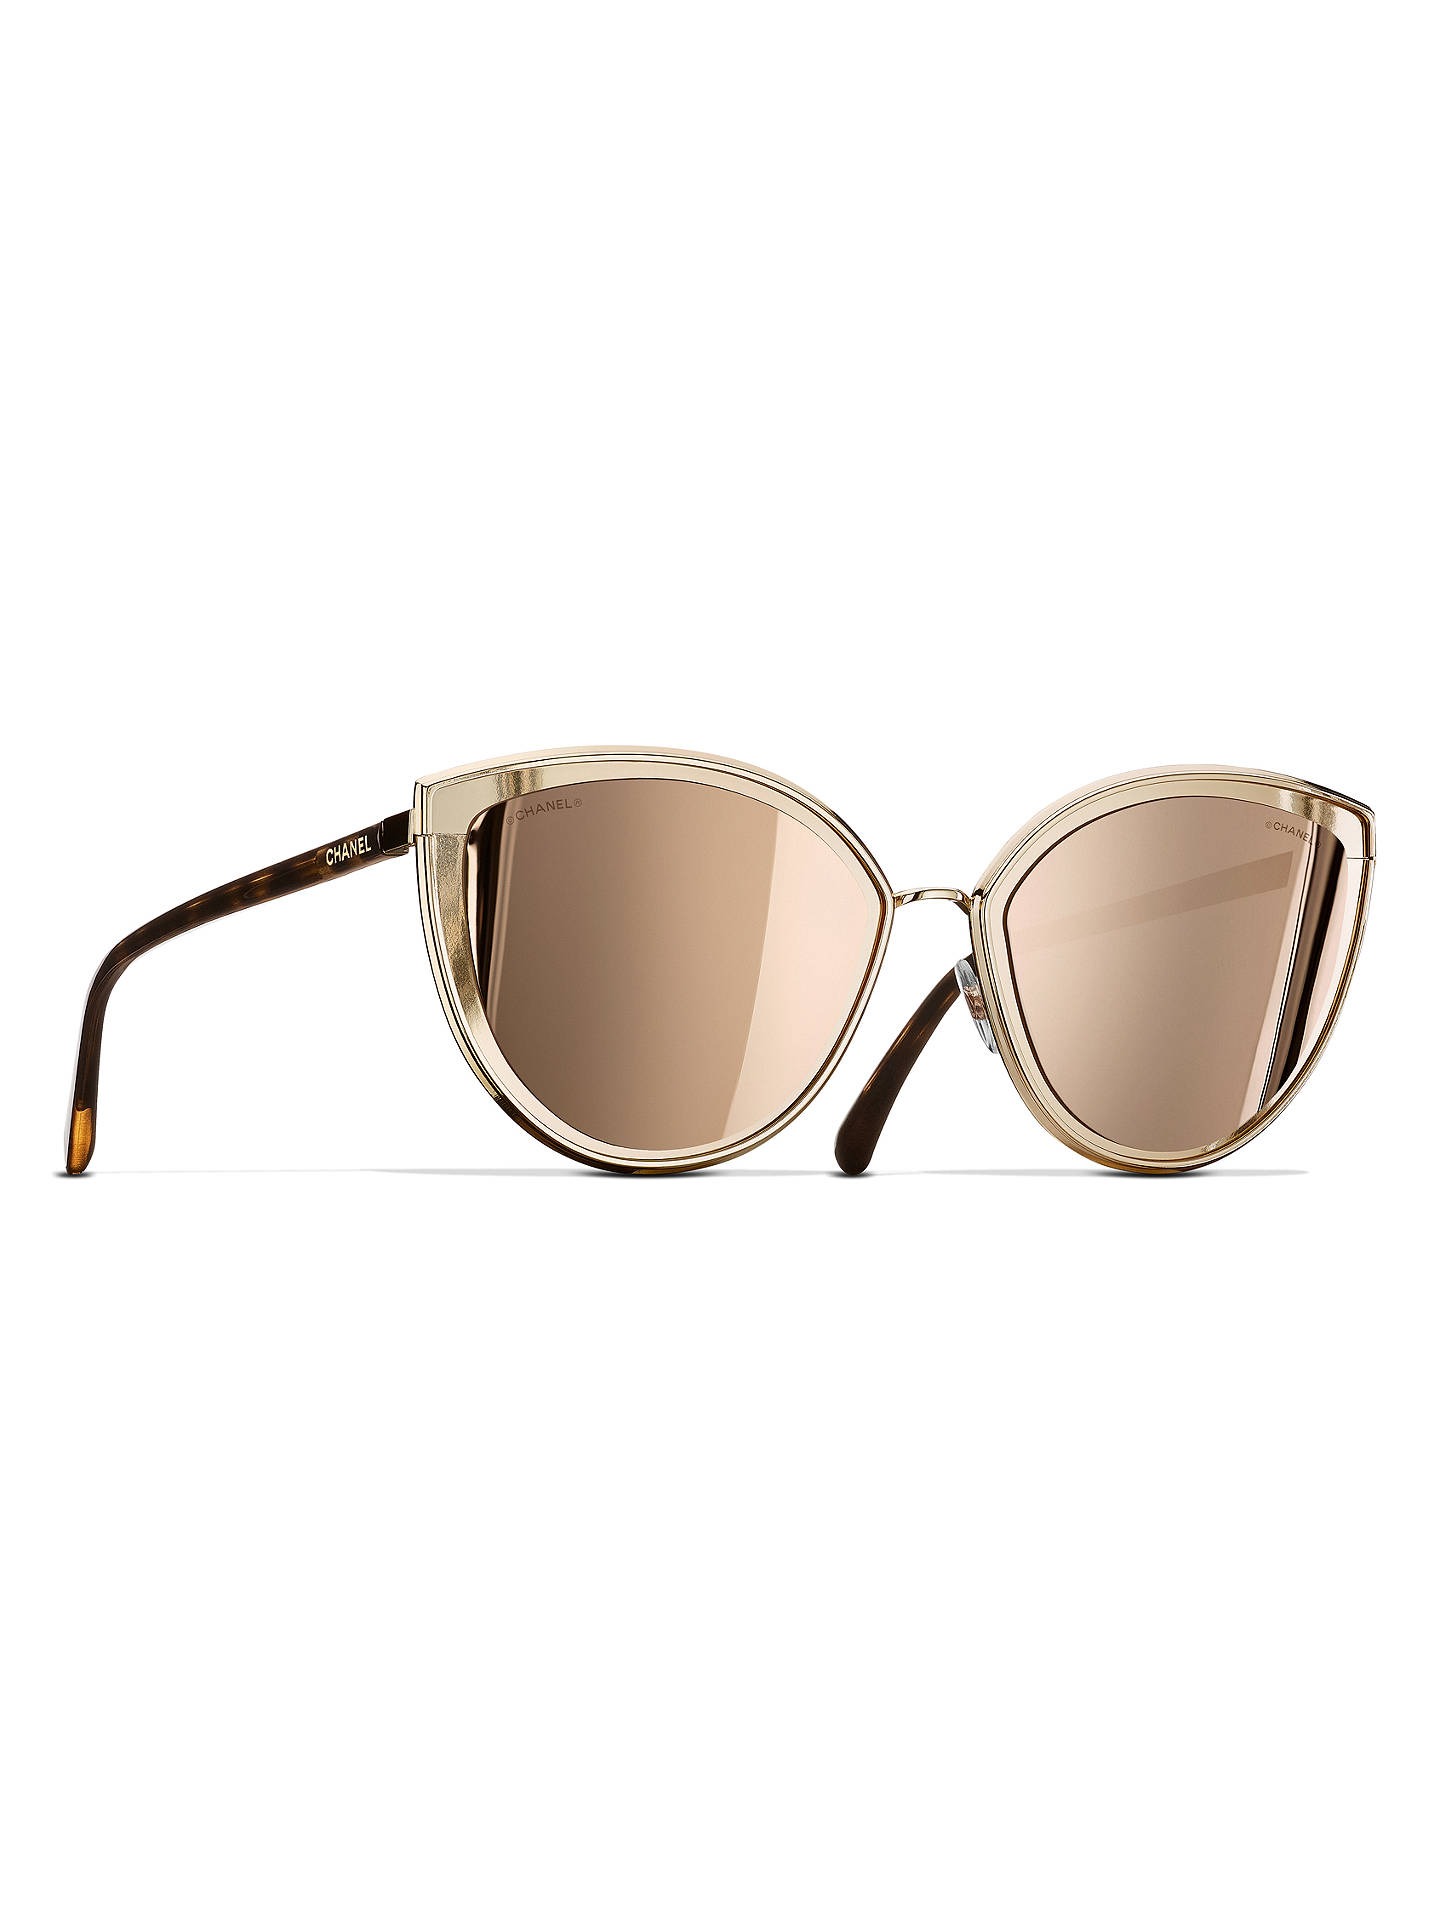 15439fe101 Buy CHANEL Cat Eye Sunglasses CH4222 Gold Online at johnlewis.com ...